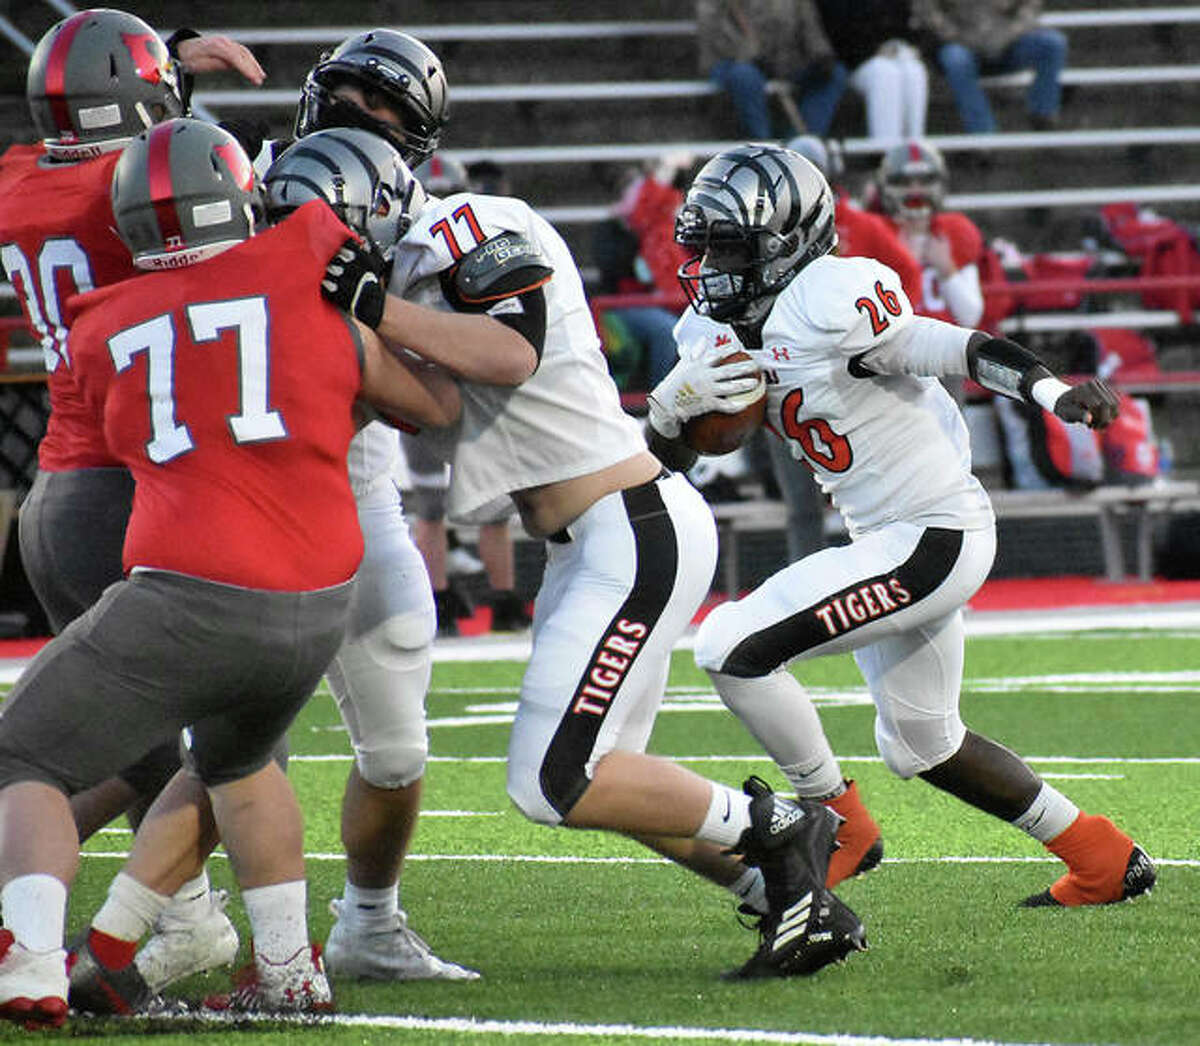 Edwardsville running back Justin Johnson Jr. looks for room behind the blocking of Alex Vaston (No. 77) in the first quarter of Friday's game against Alton.